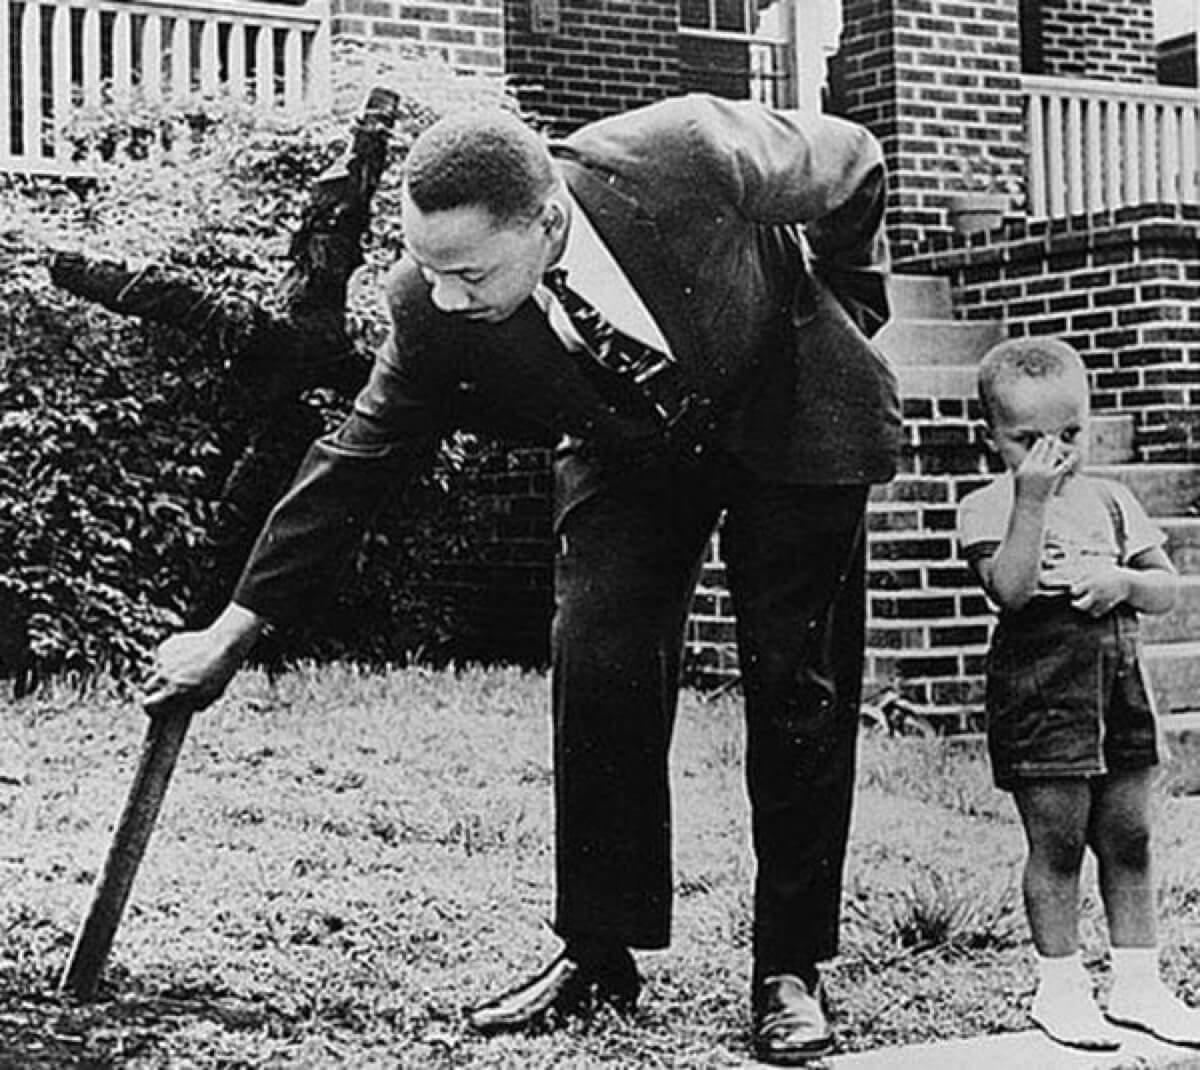 Finding A Burning Cross on Martin Luther King Jr.'s Fron Lawn